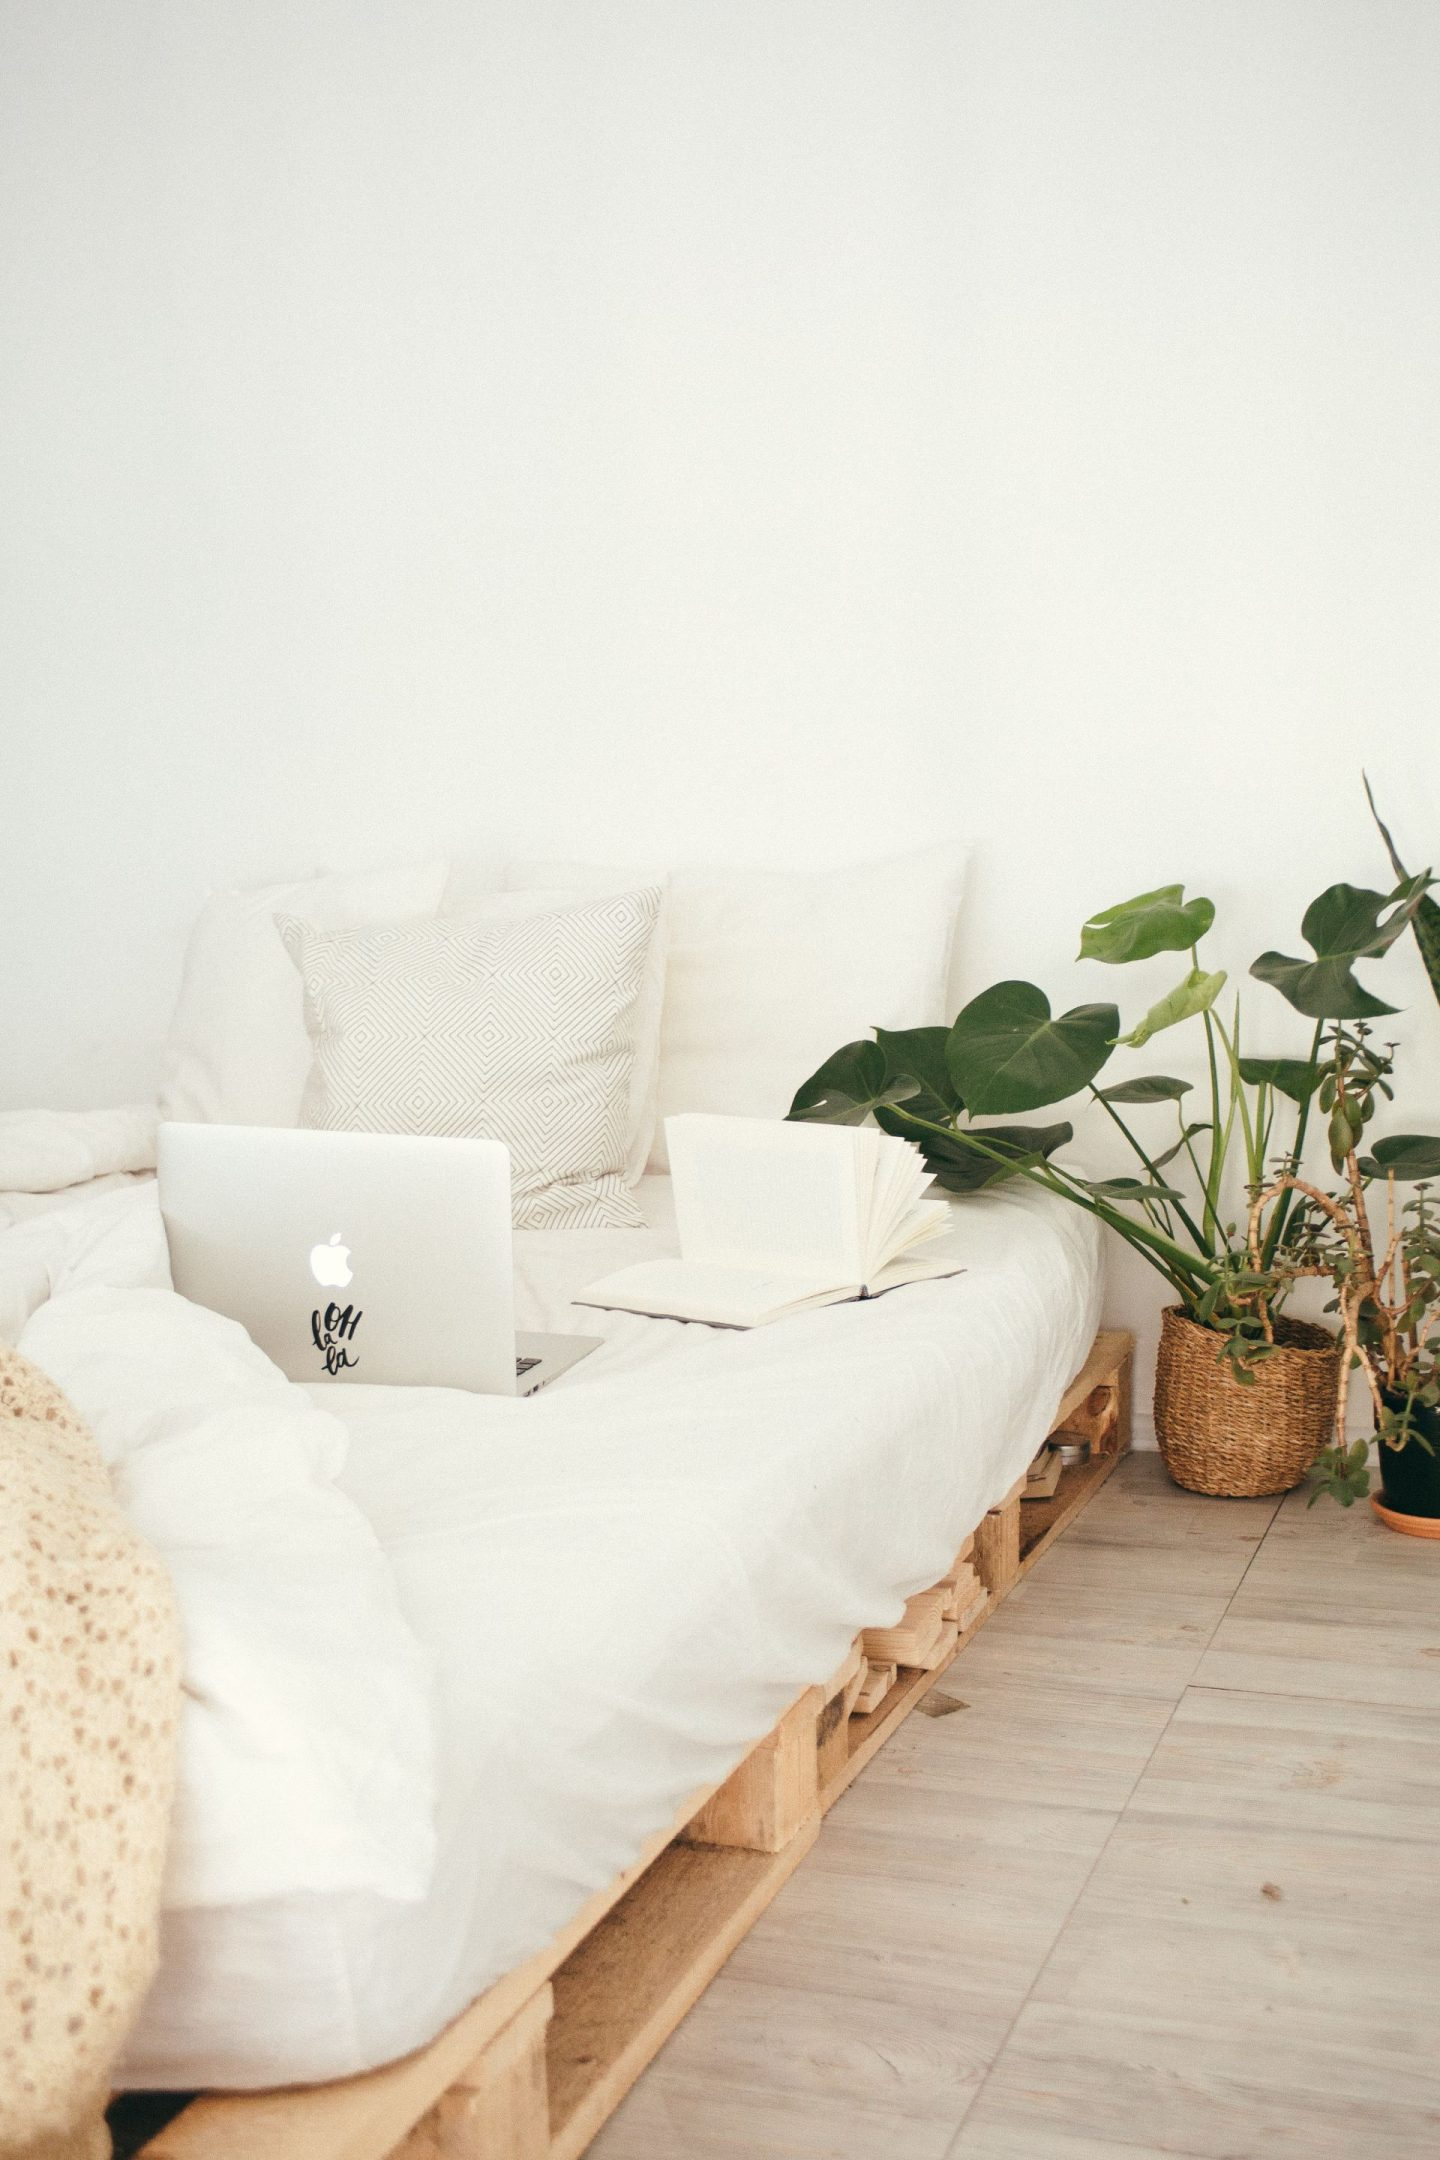 freelancing setup with laptop and book on bed